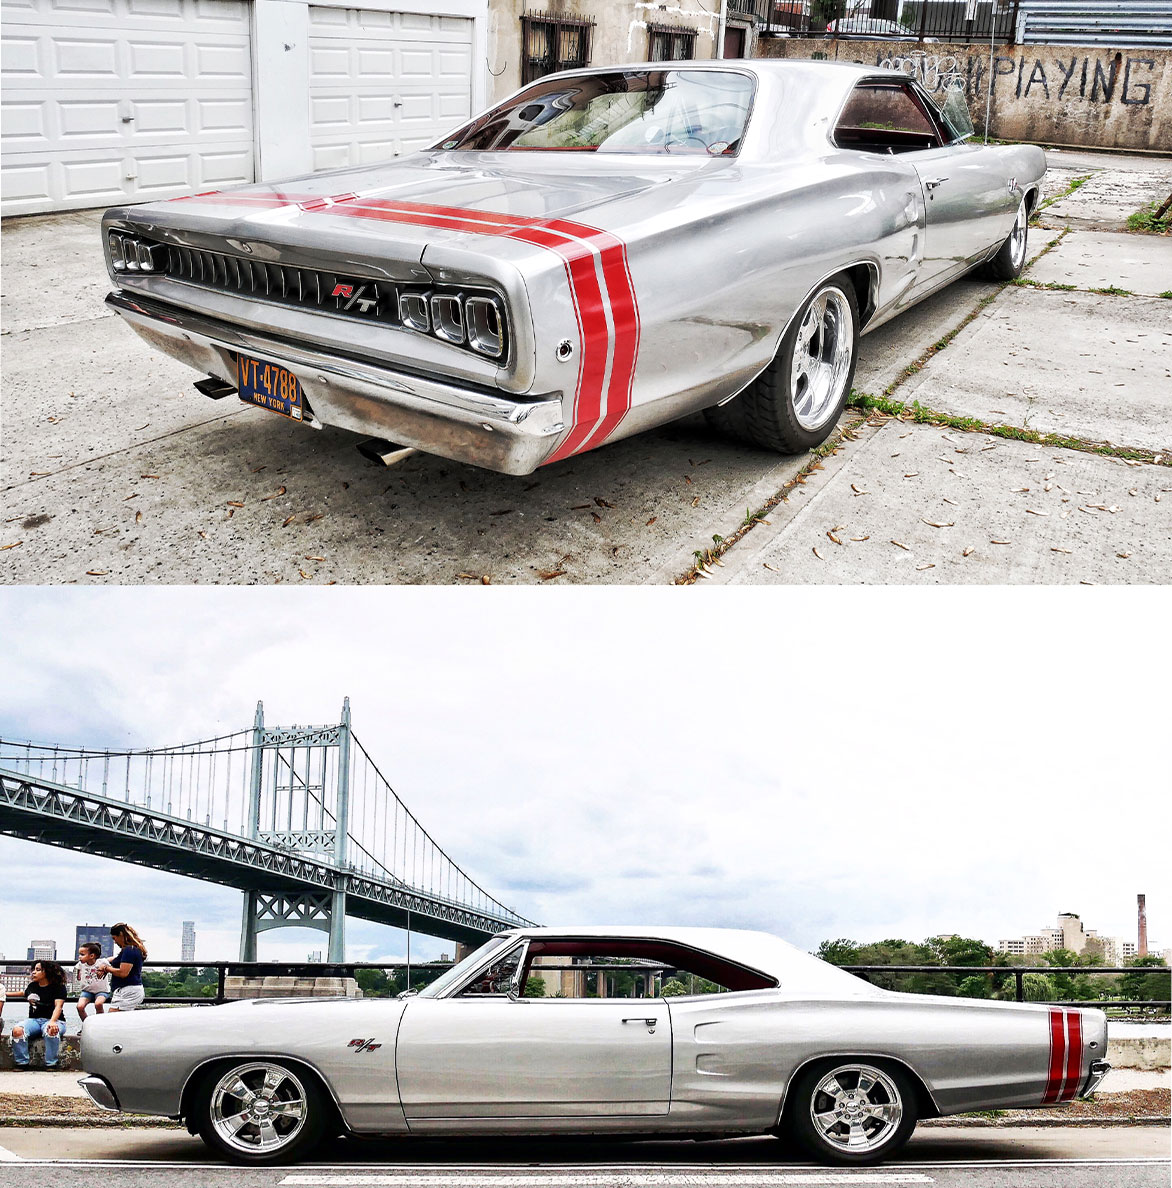 Peter Tsonos' Coronet R/T, the story on this car that was built in Queens hasn't been published yet, but it will be soon and you'll love this car as much as I do!